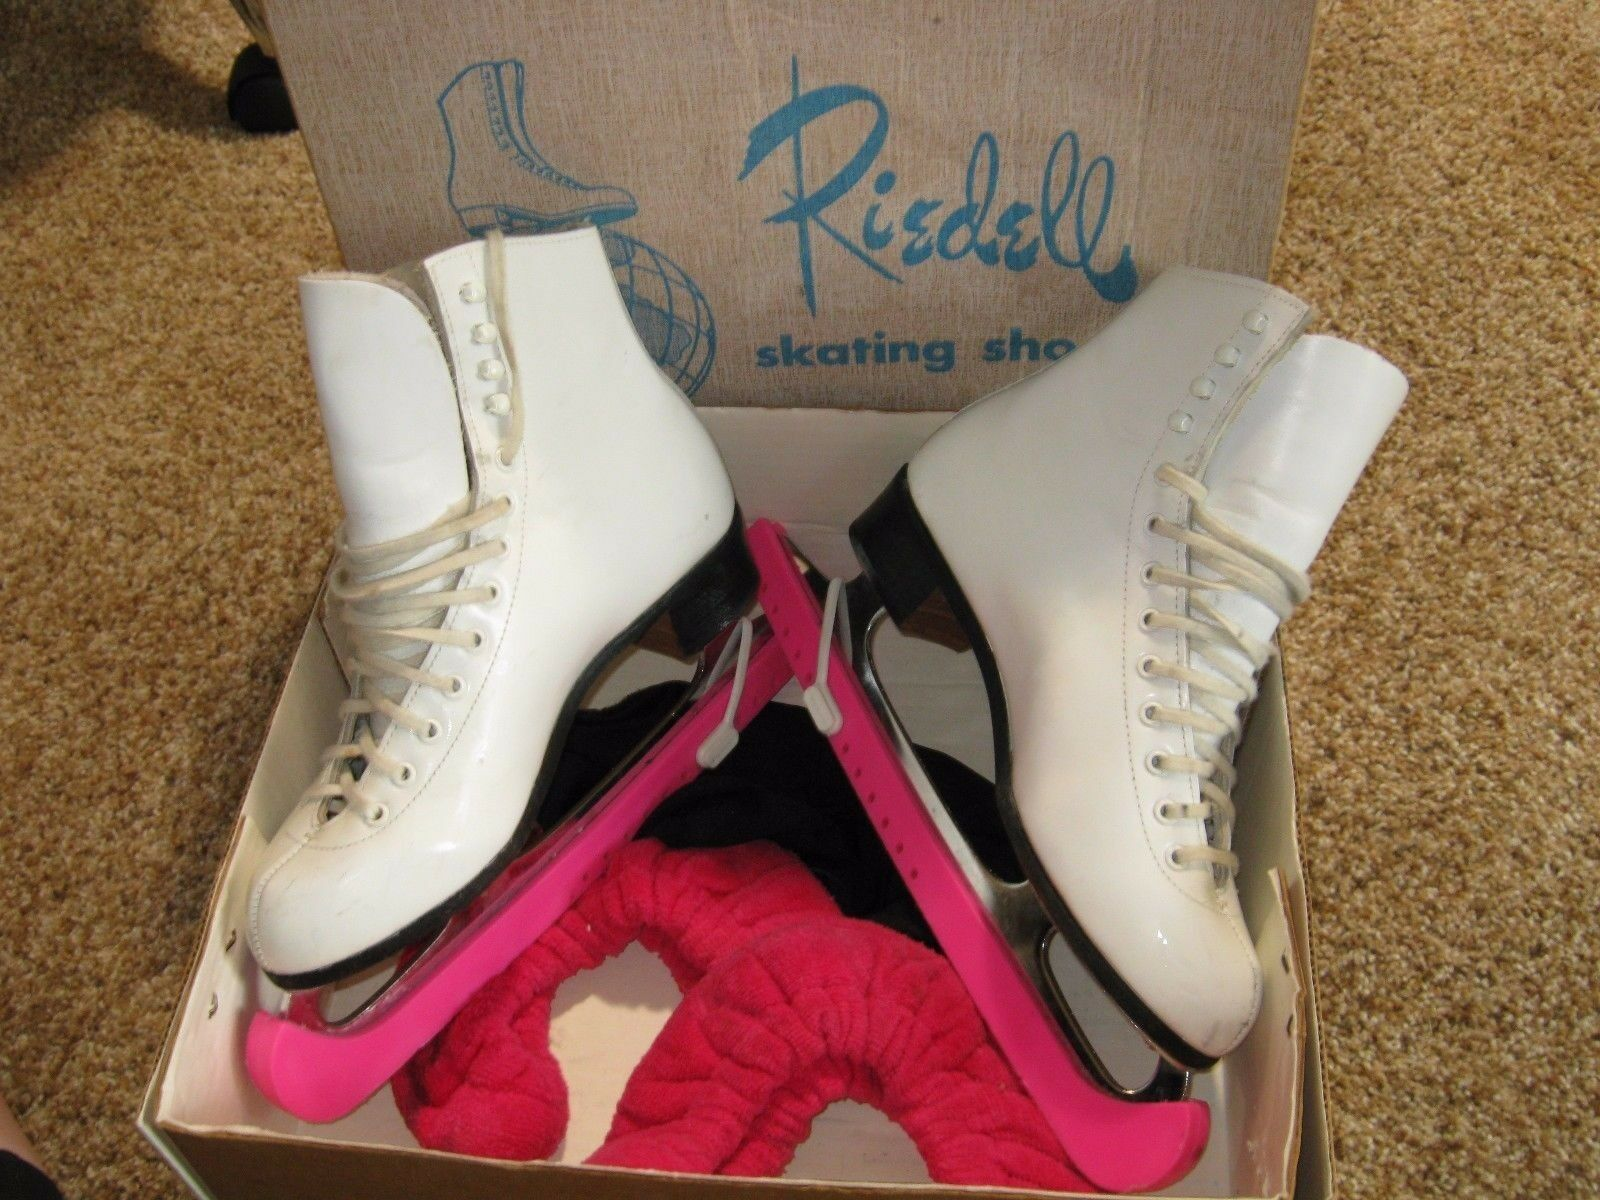 Riedell Women's Skating shoes 220W - Size 6 1 2 White Sheffield Blades